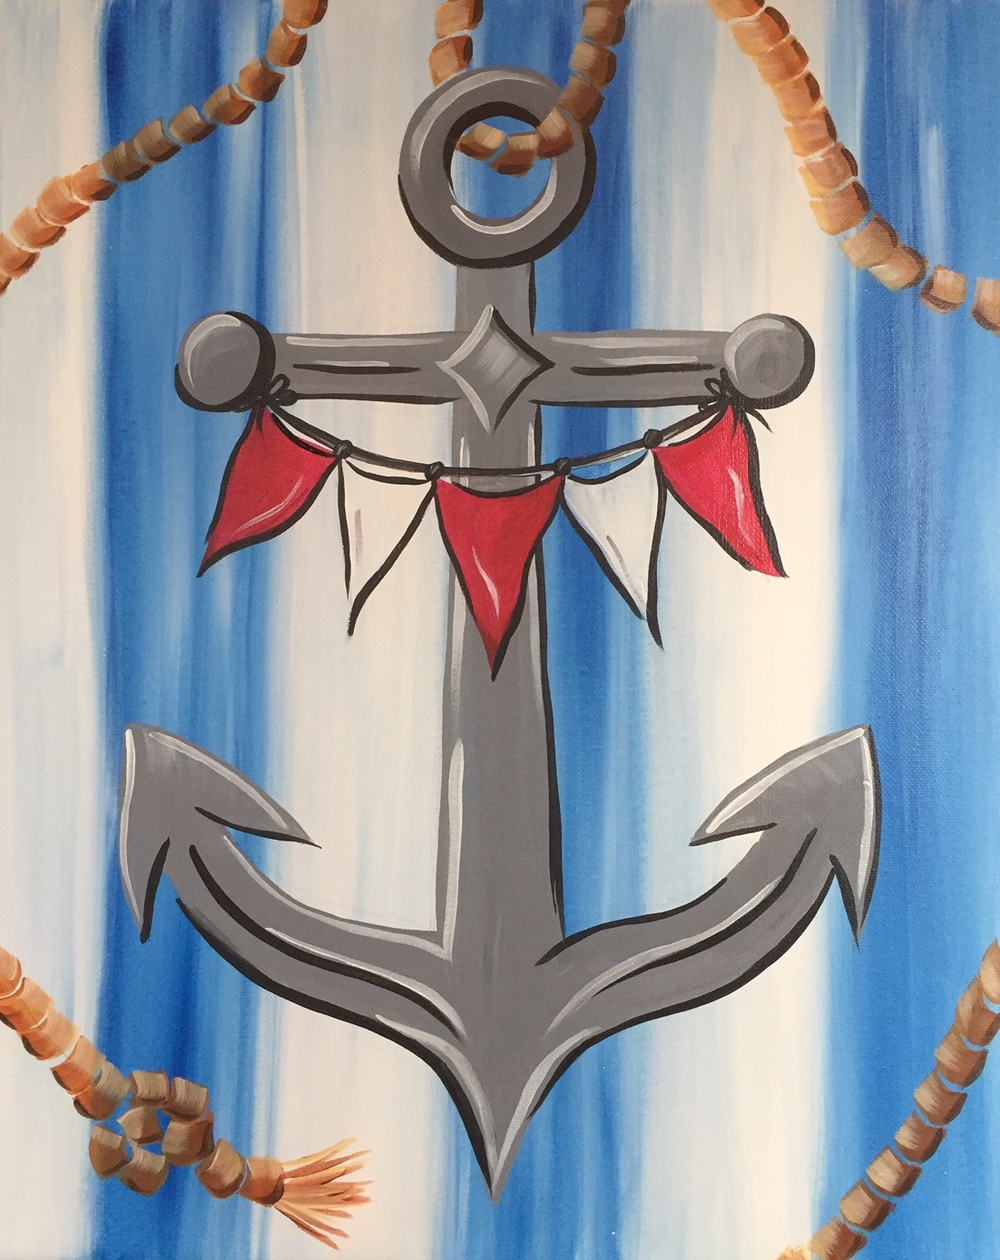 Anchor CW.jpg